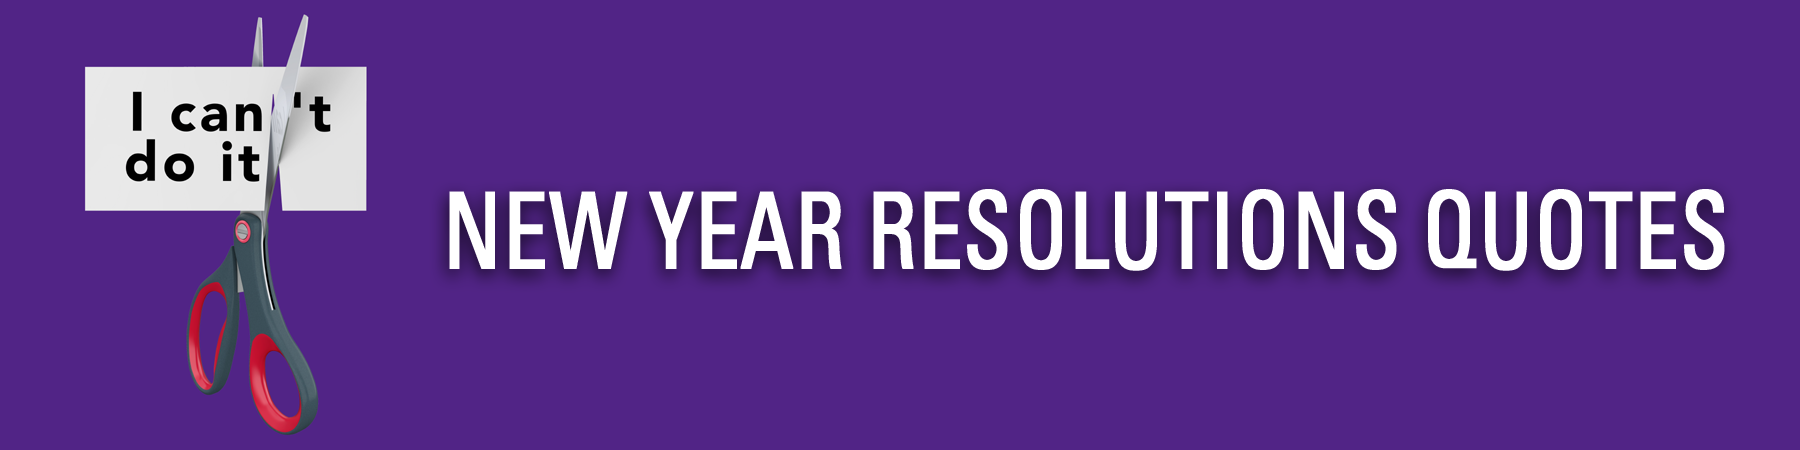 New Year Resolutions Quotes